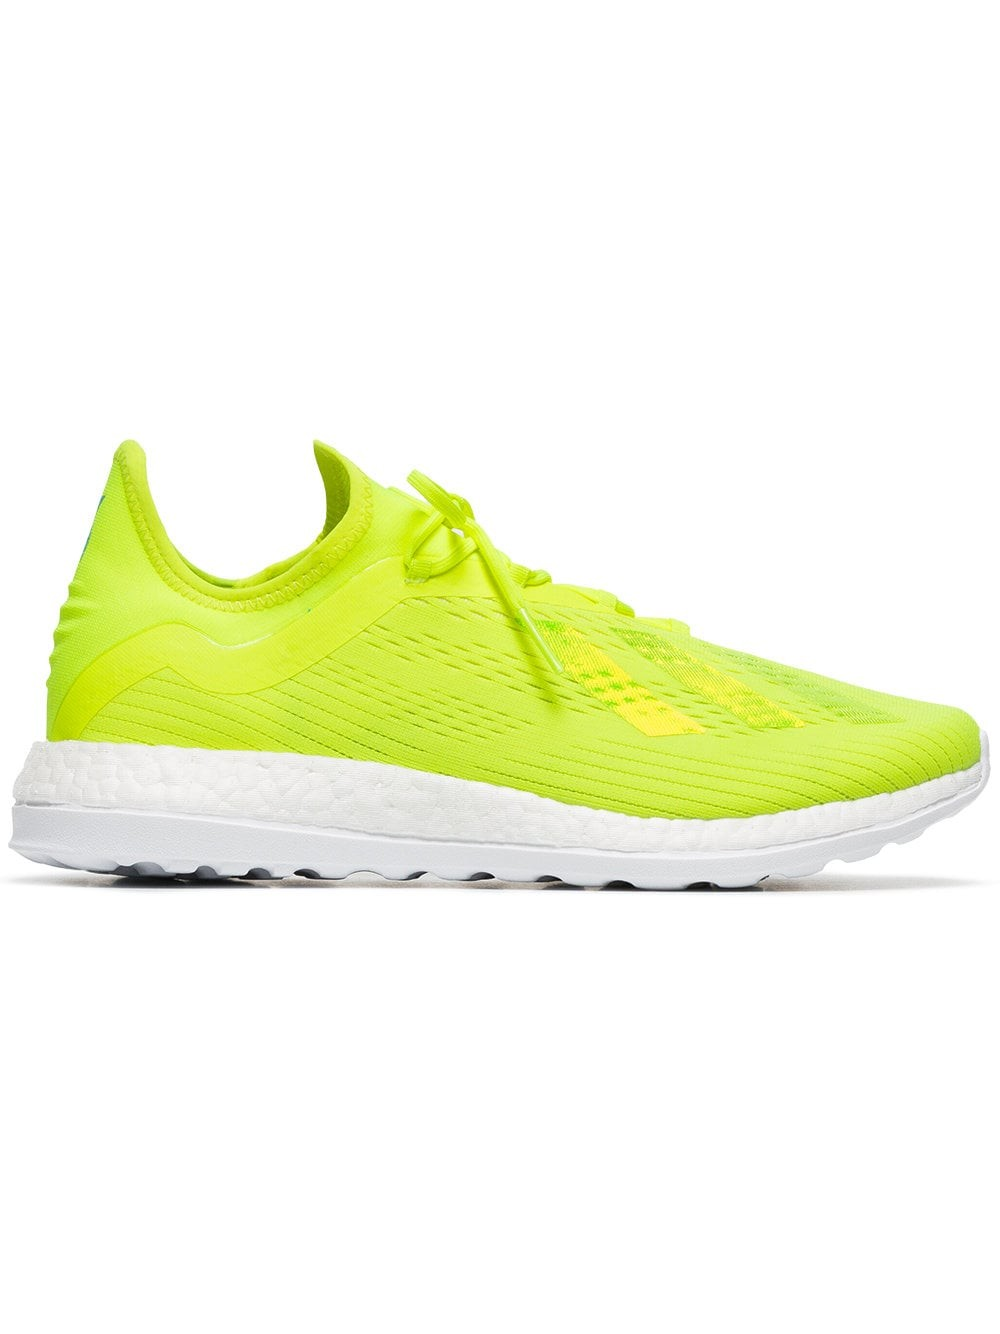 Adidas Performance World Cup X 18+ TR 'Jaune' BB7421